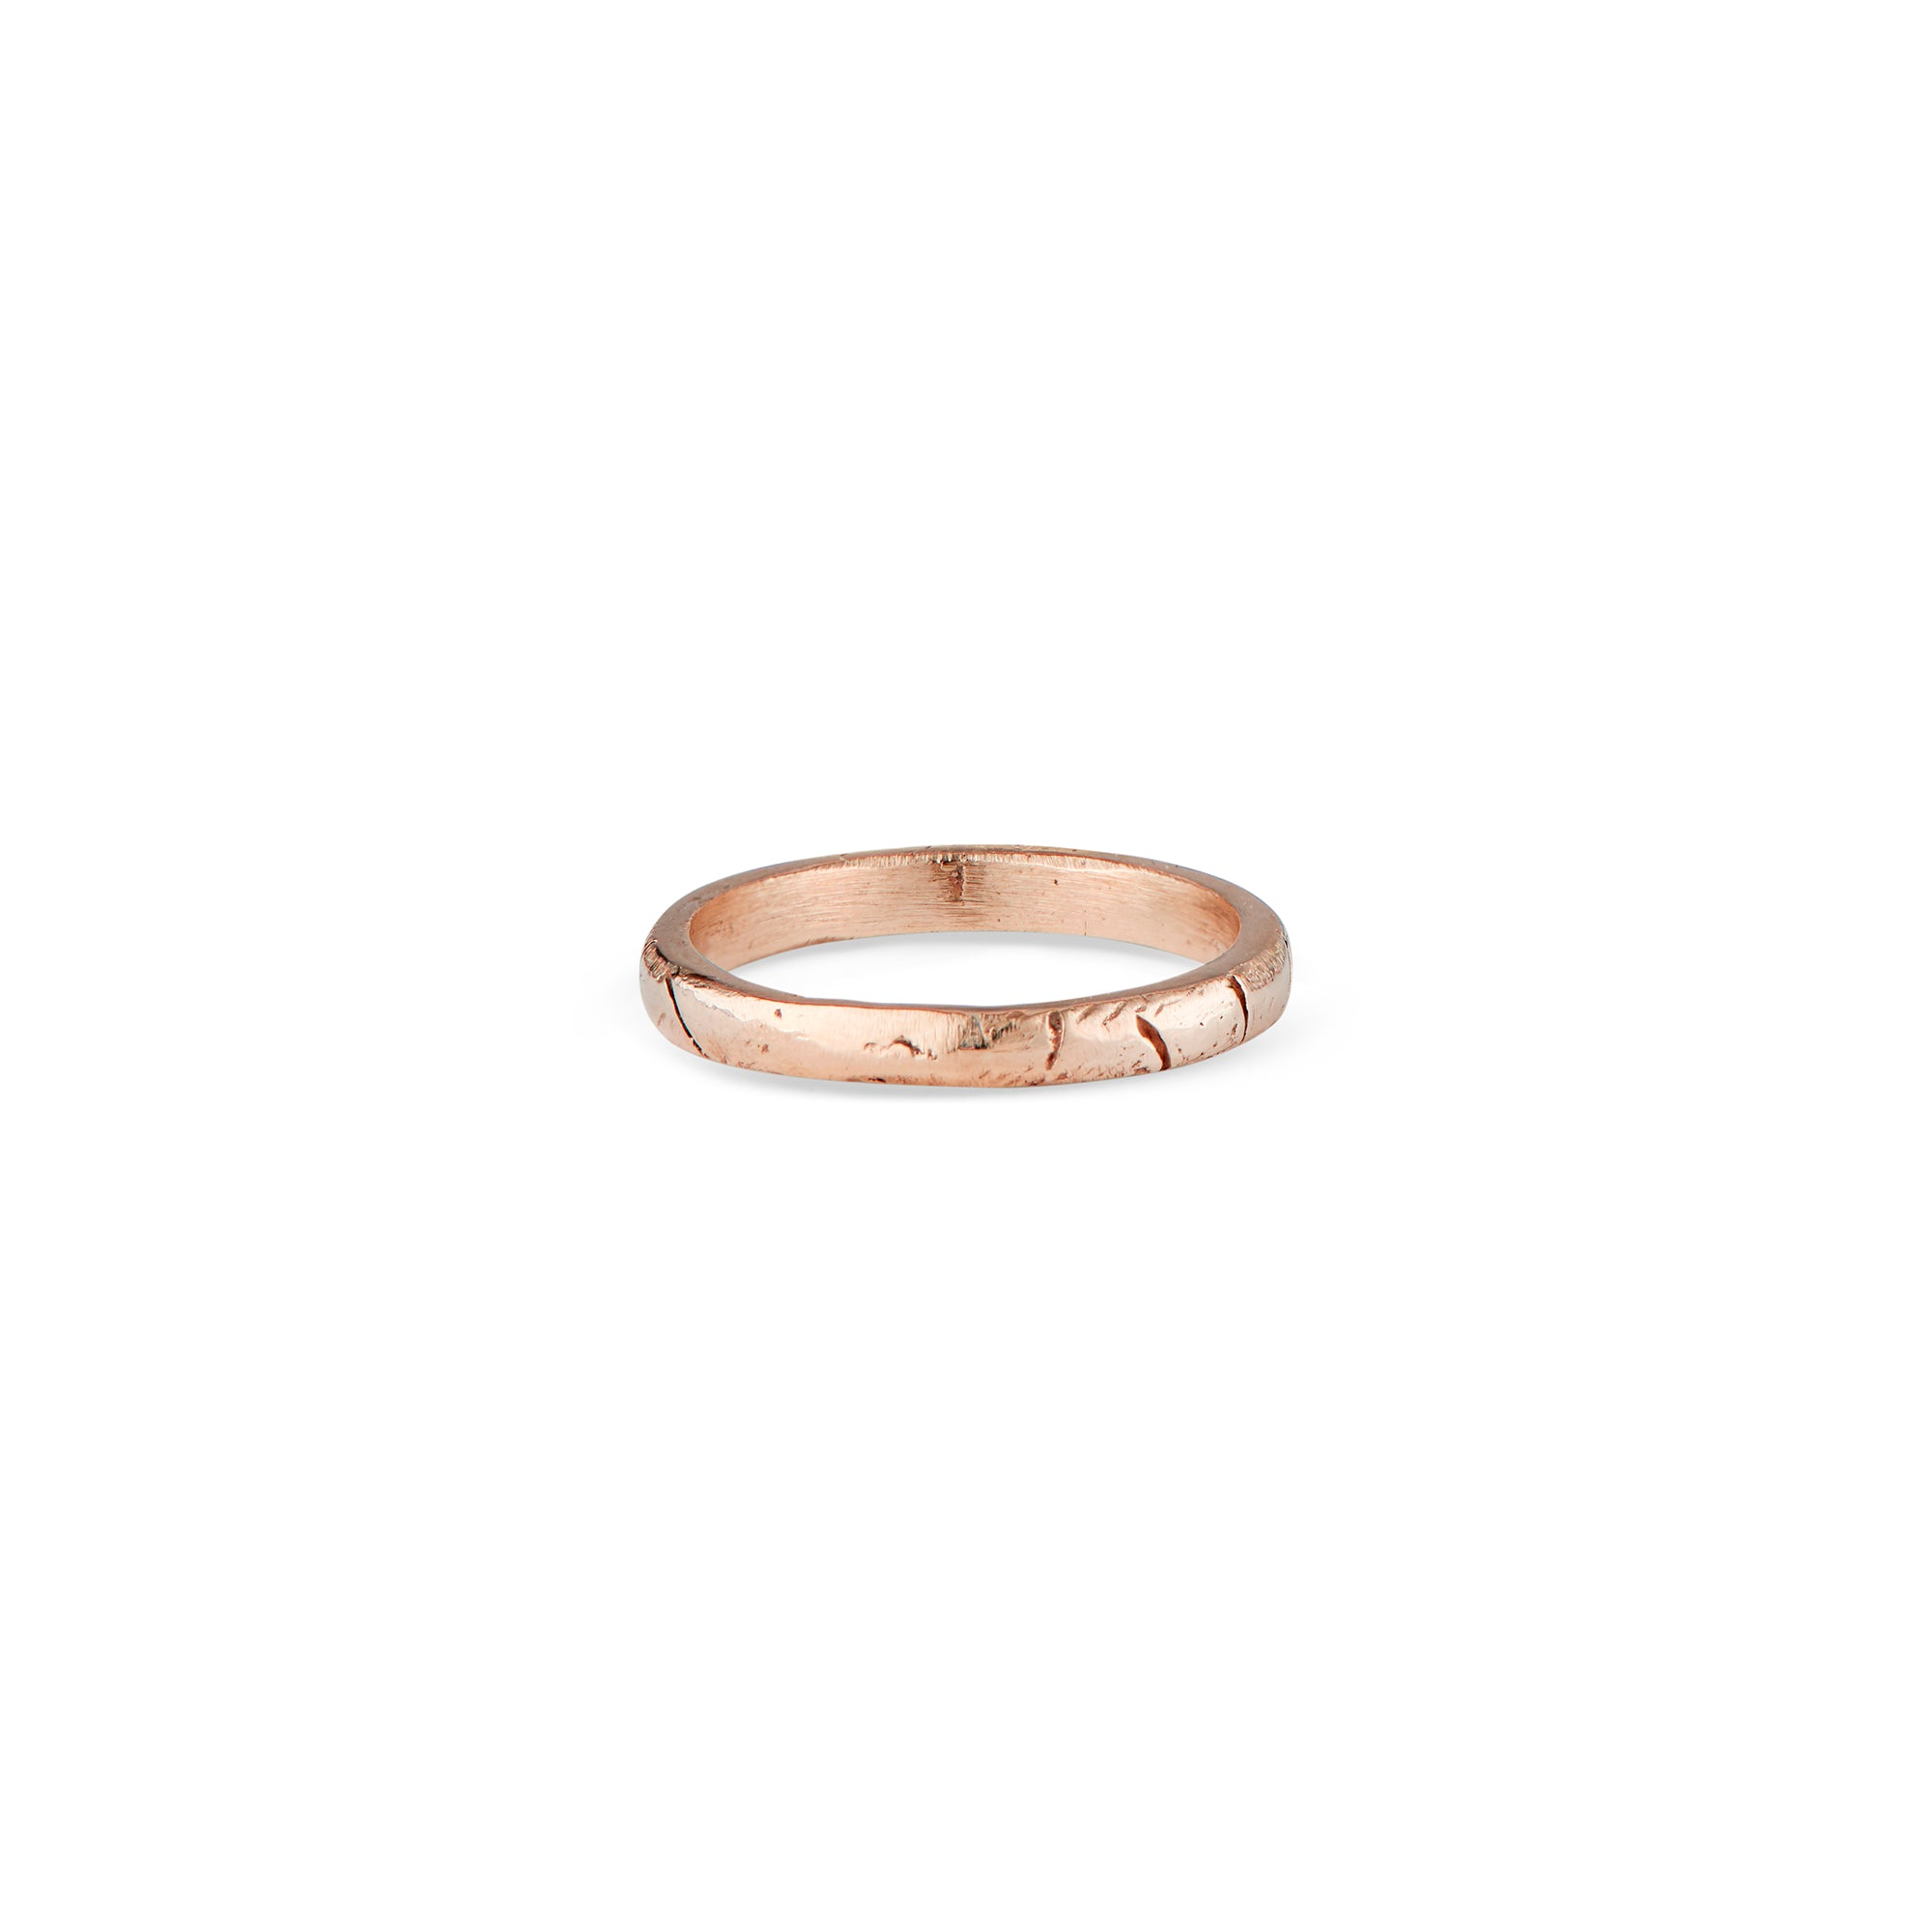 This is a super comfortable, stackable, solid 14k Rose gold Liz Ring with Natalie McMillan Jewelry's signature geometric texture around the band! It is handcrafted and made to order, making each one unique and one of a kind! It is perfect for every day wear and mixing and matching with other rings.